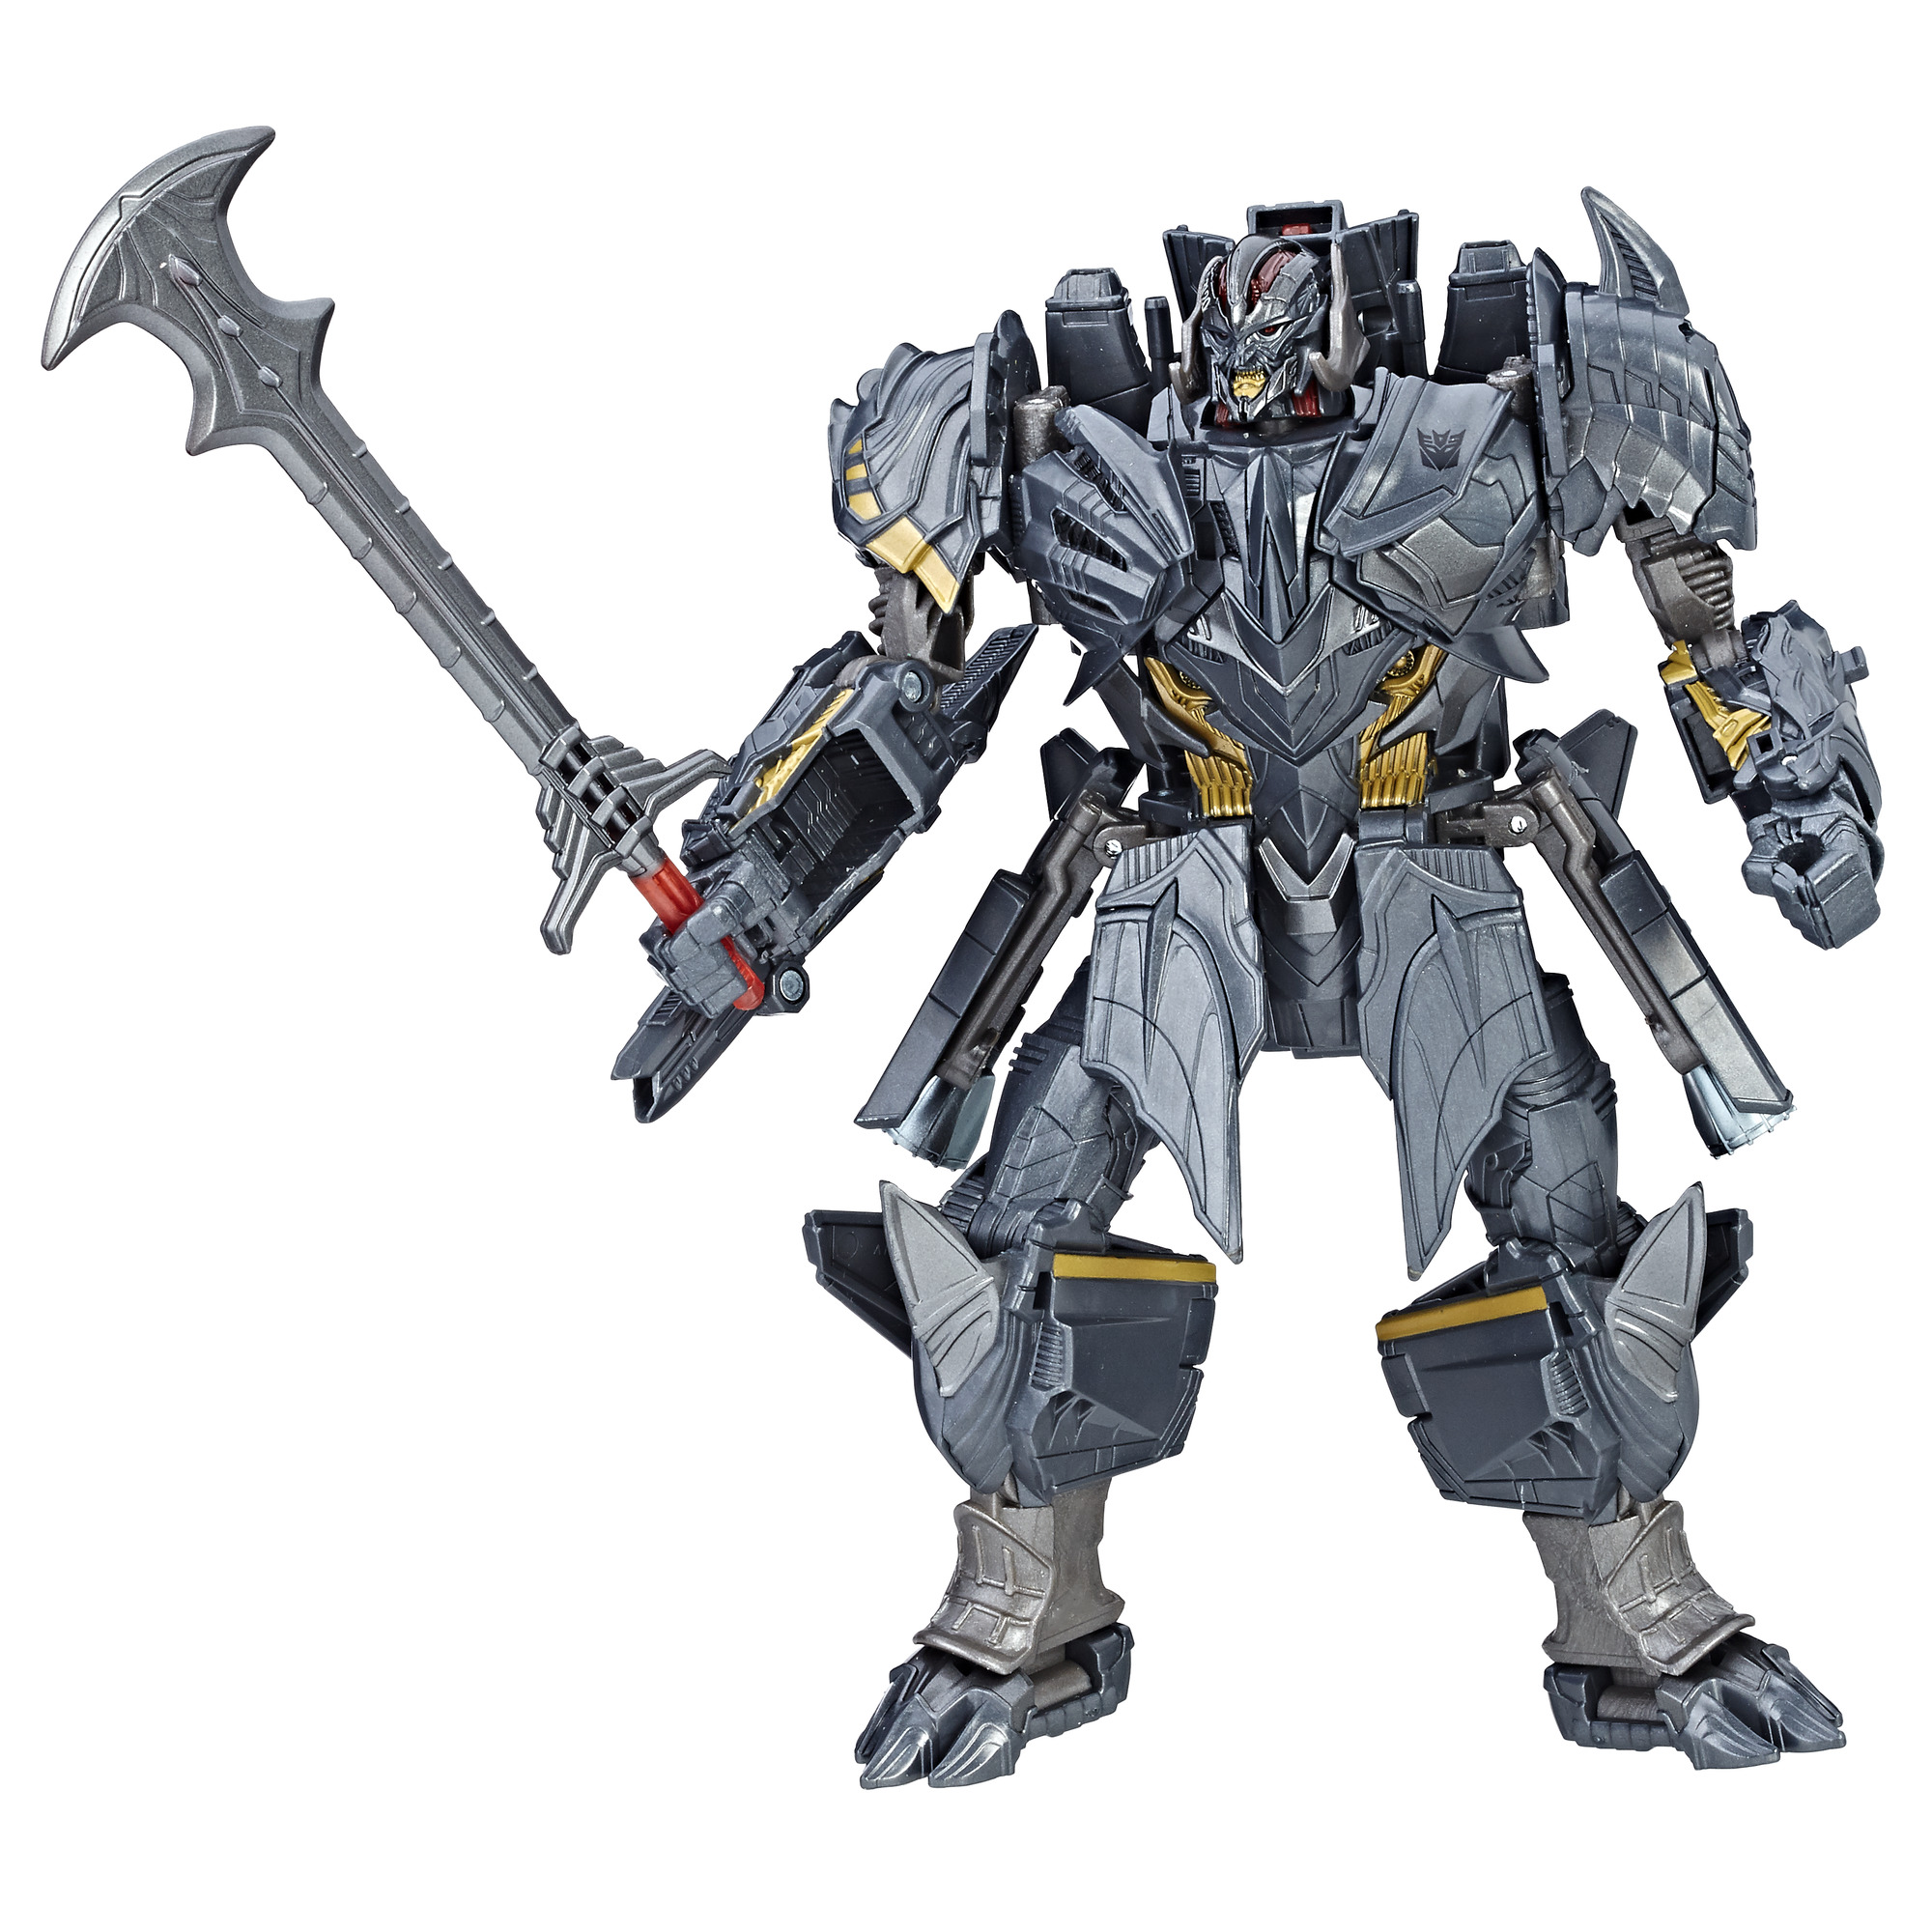 Transformers: The Last Knight Premier Edition Voyager Class Megatron by Hasbro